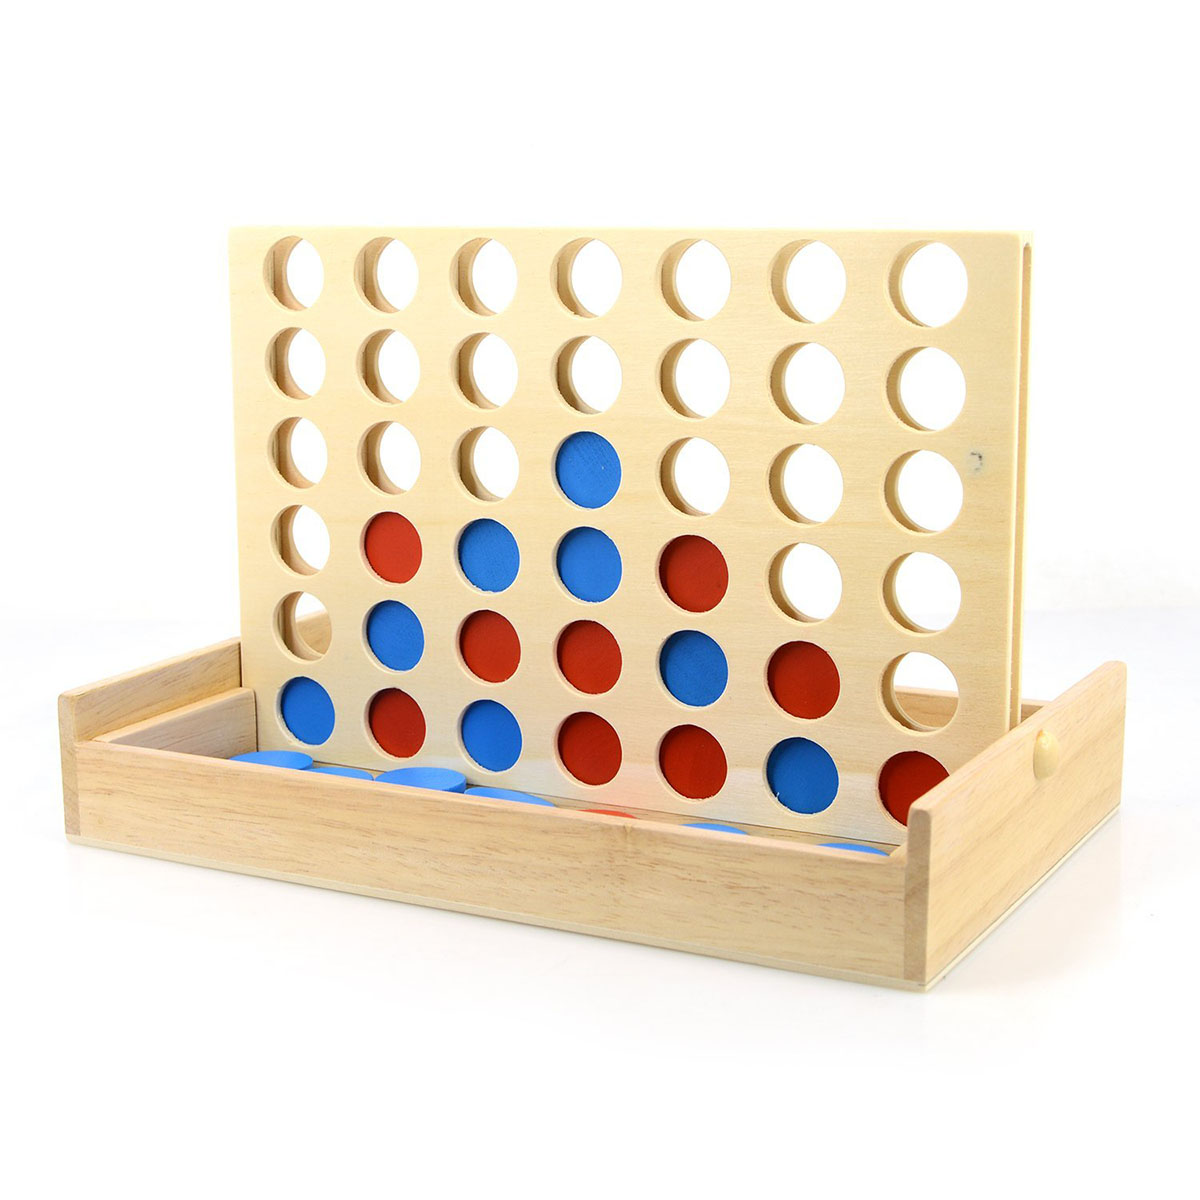 New Blue/Red Four In A Row Wooden Game Line Up 4 Fun